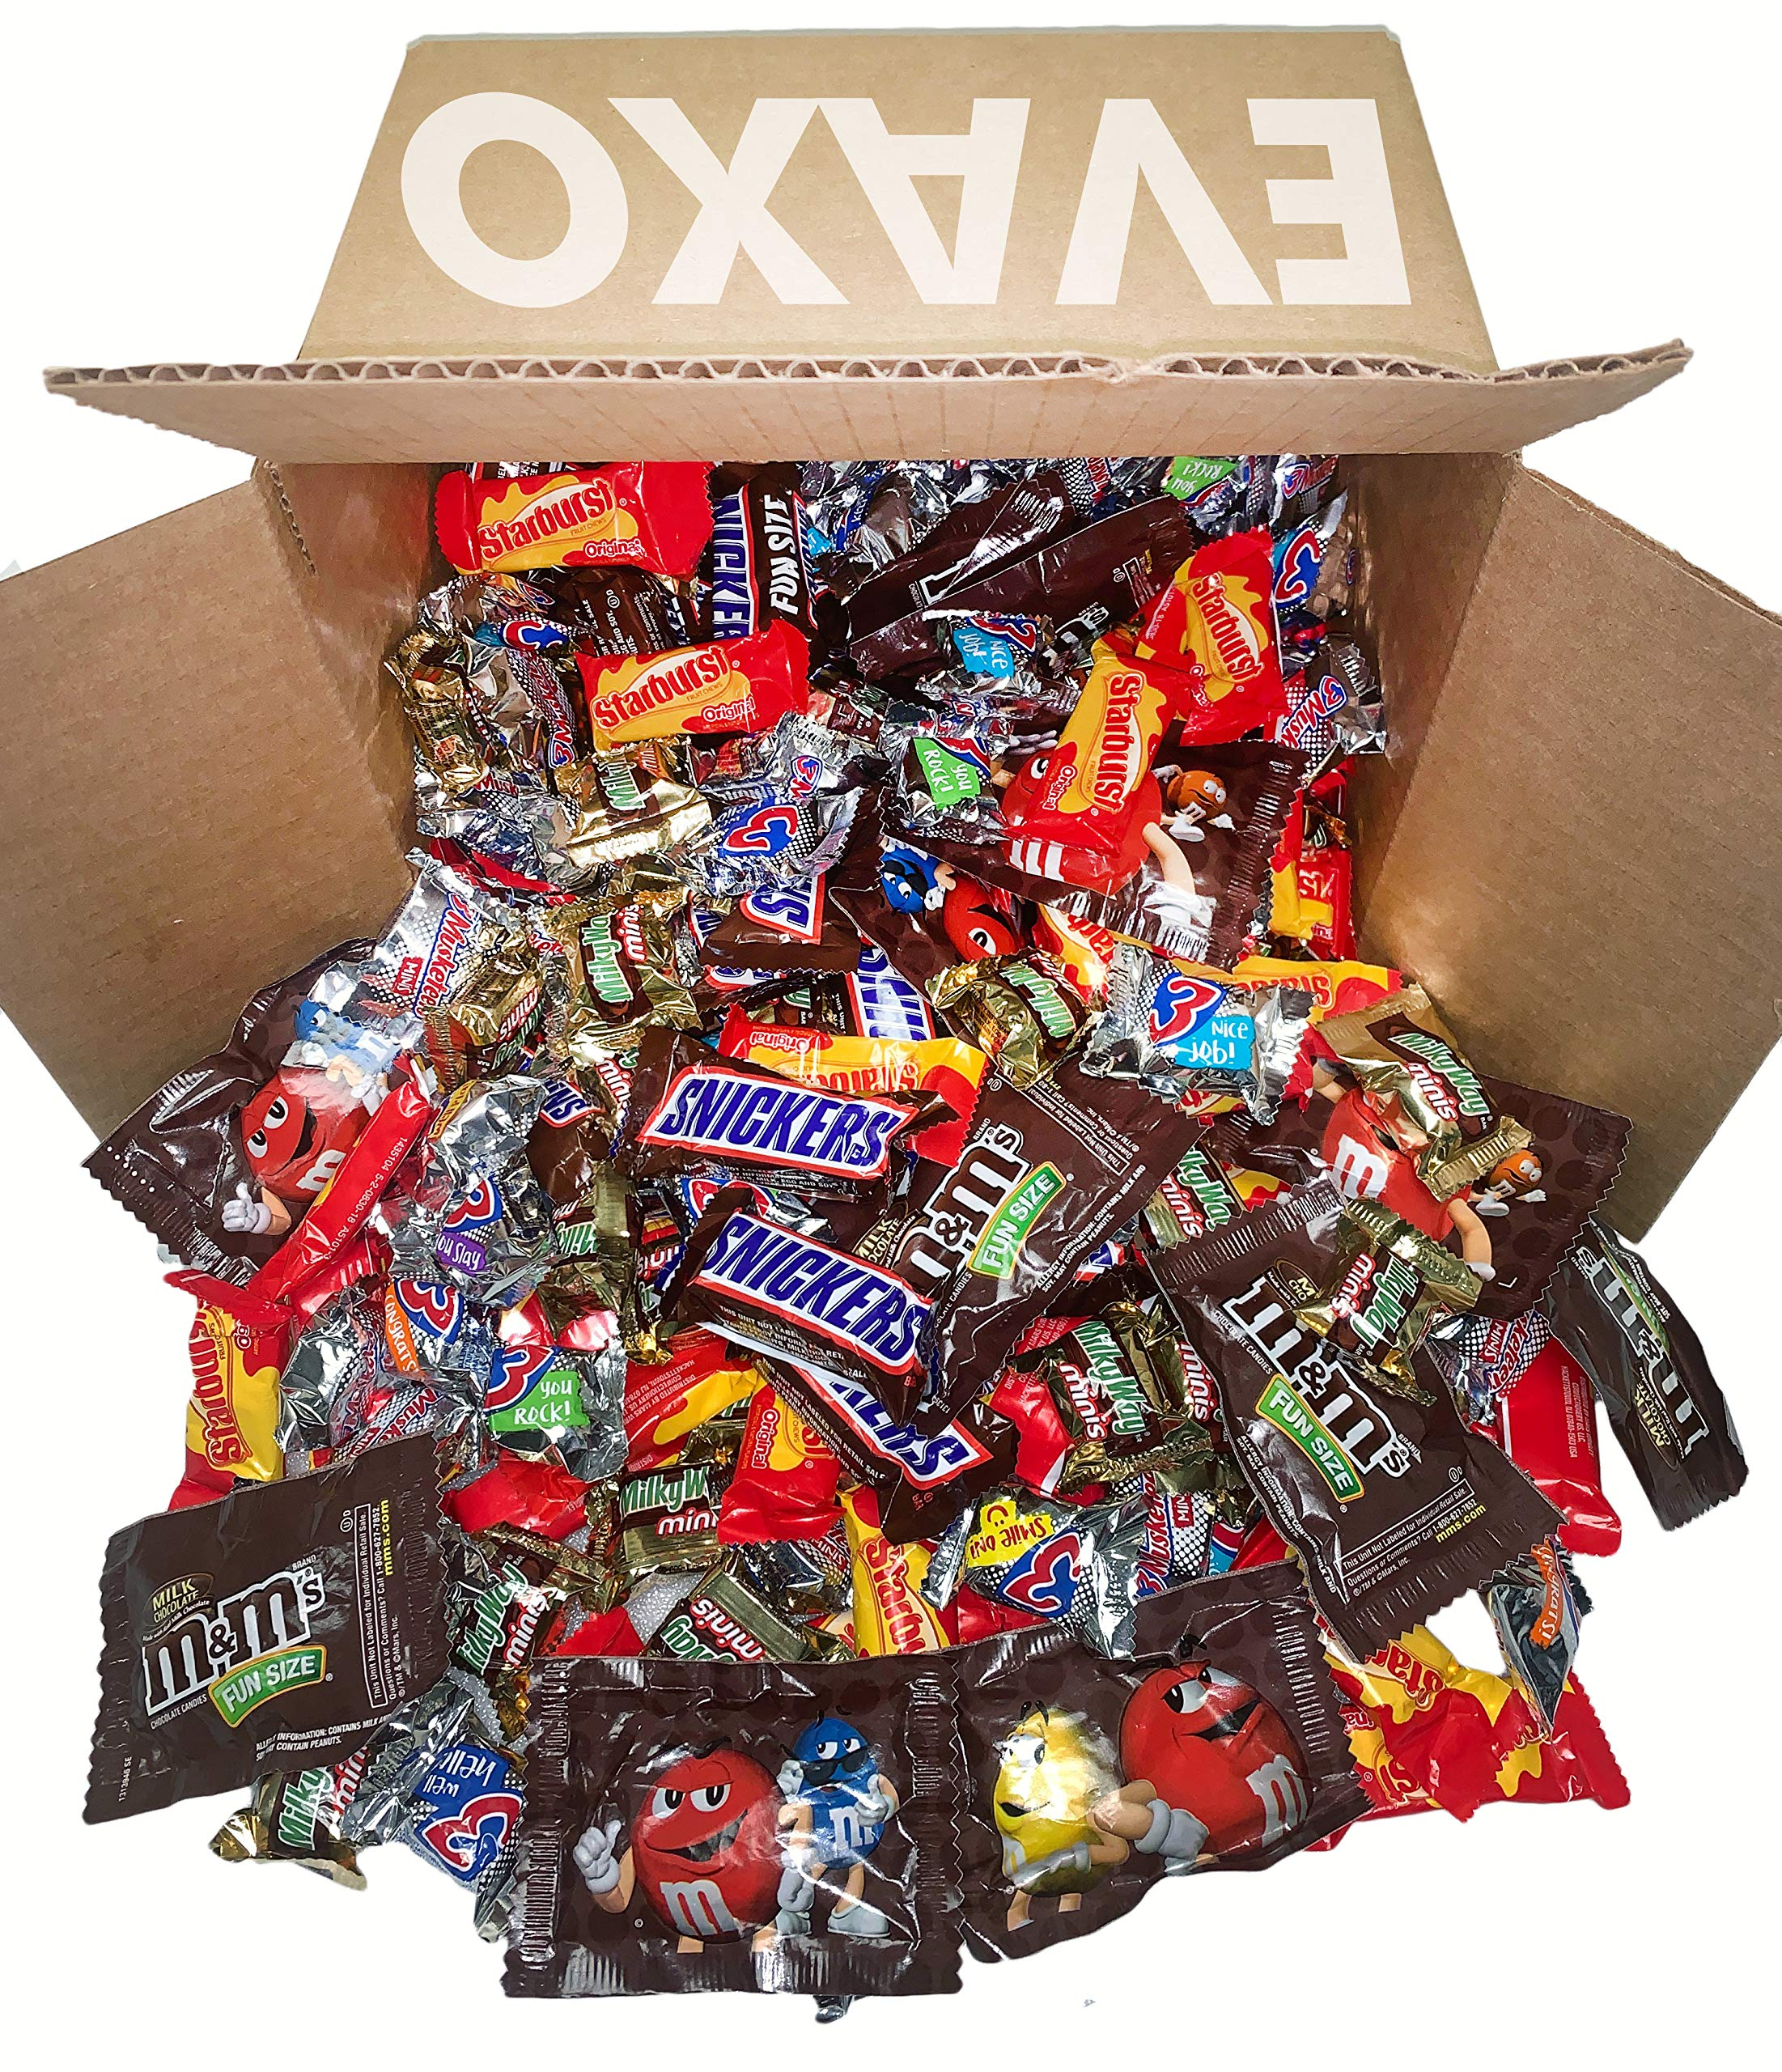 Halloween Fun Size Candy Includes: Three Musketeers, Milky Way, Starburst, Snickers, M&M's Great for the holidays 290 ct. by evaxo